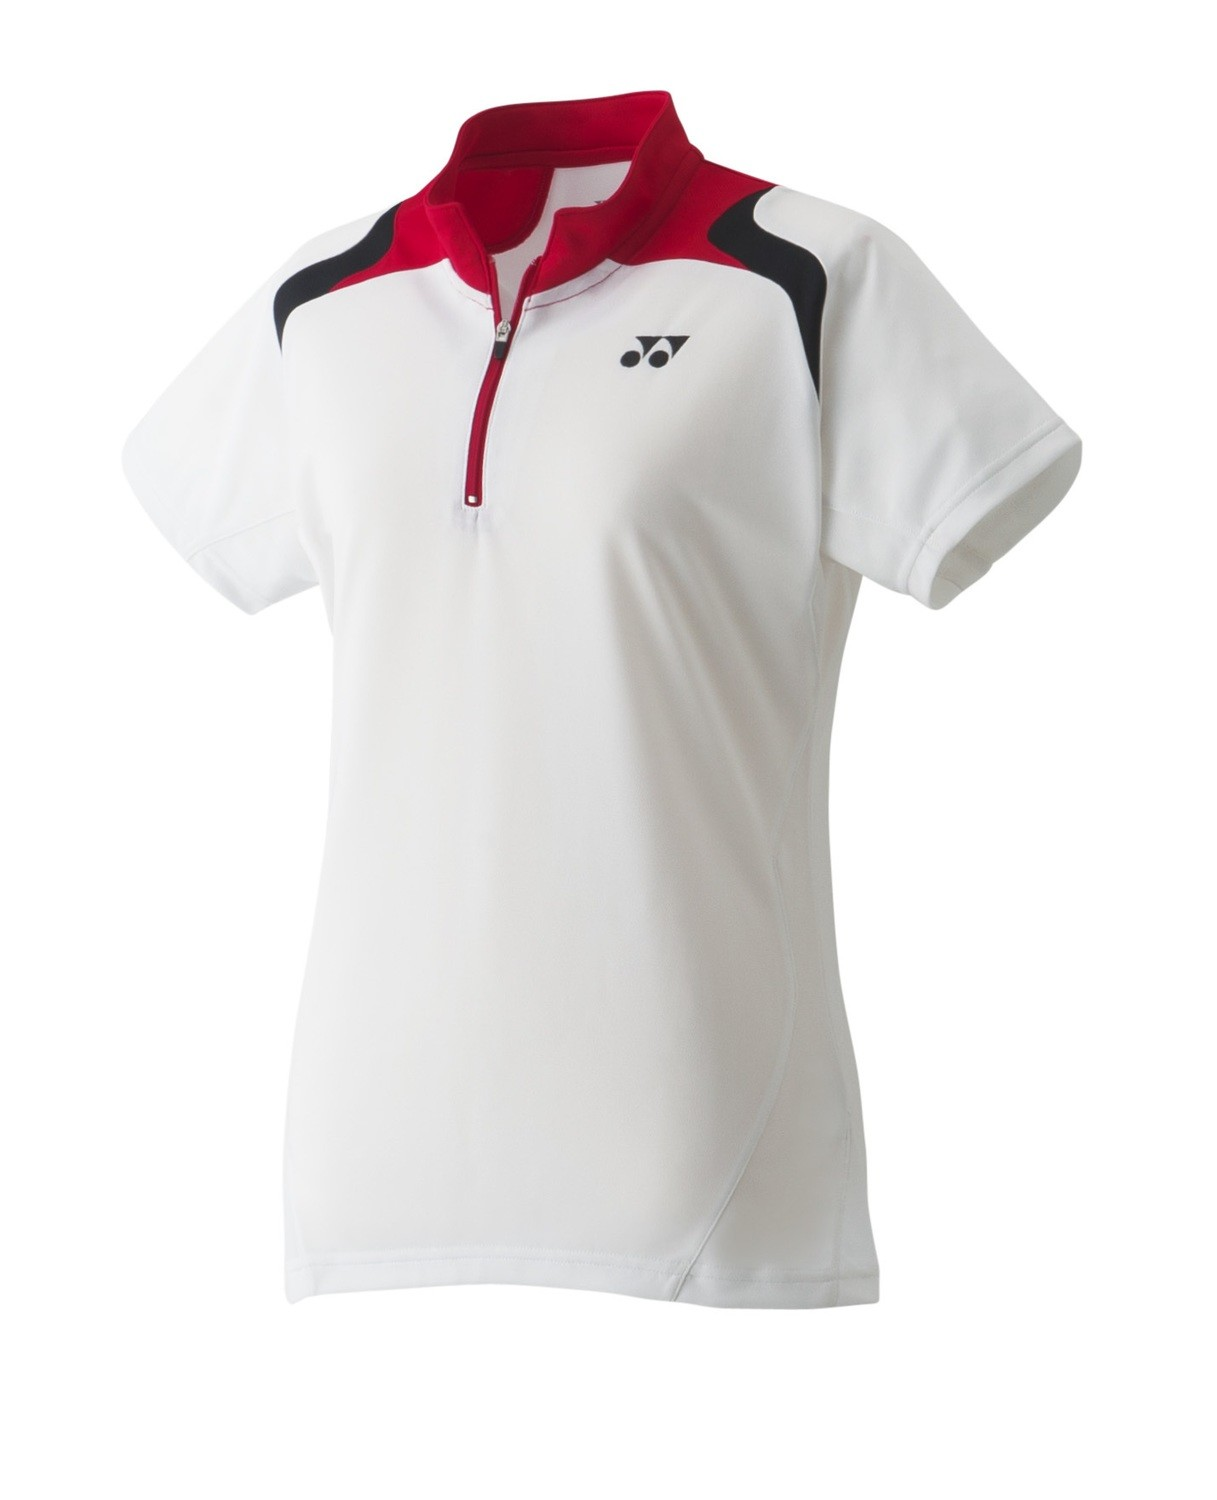 Yonex Womens Polo Shirt - White/Red